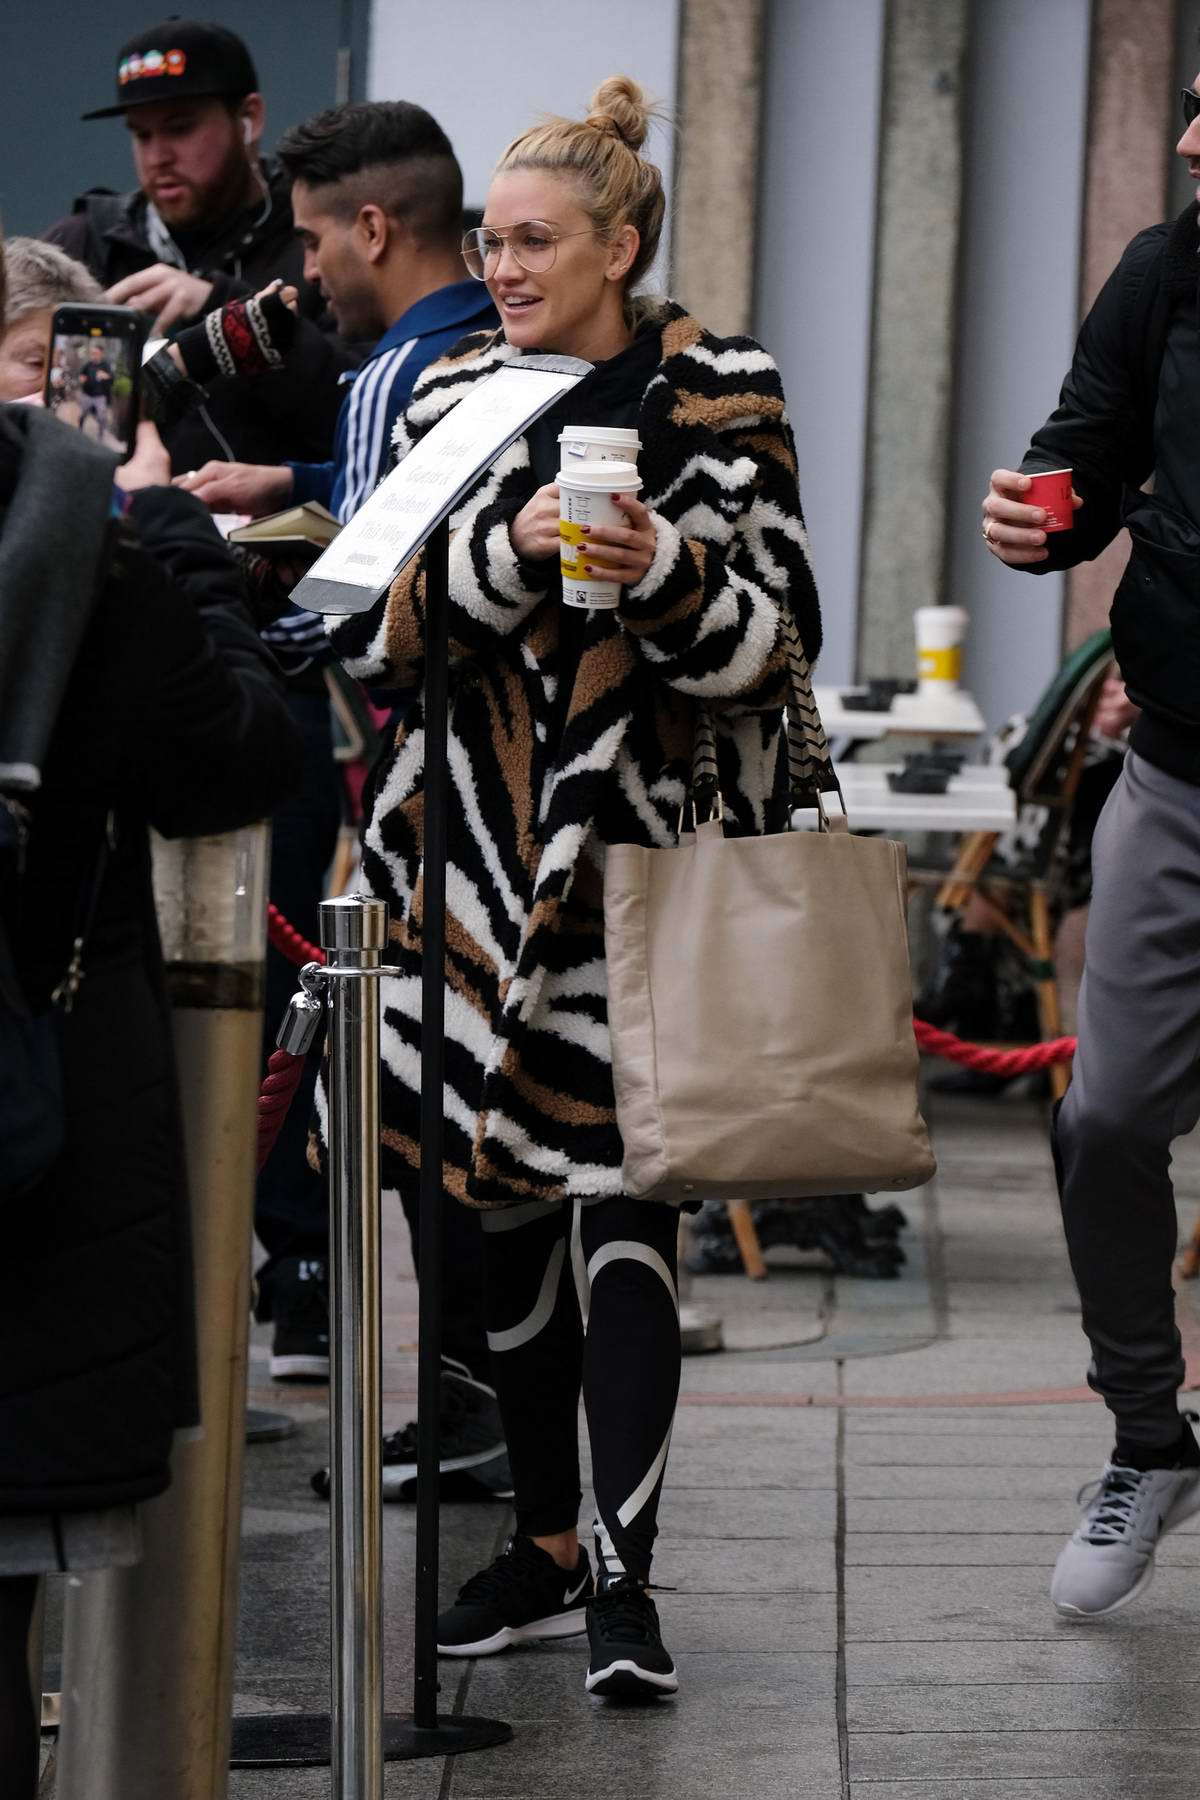 Ashley Roberts seen leaving a hotel as she heads to 'Strictly Come Dancing' rehearsals in Birmingham, UK